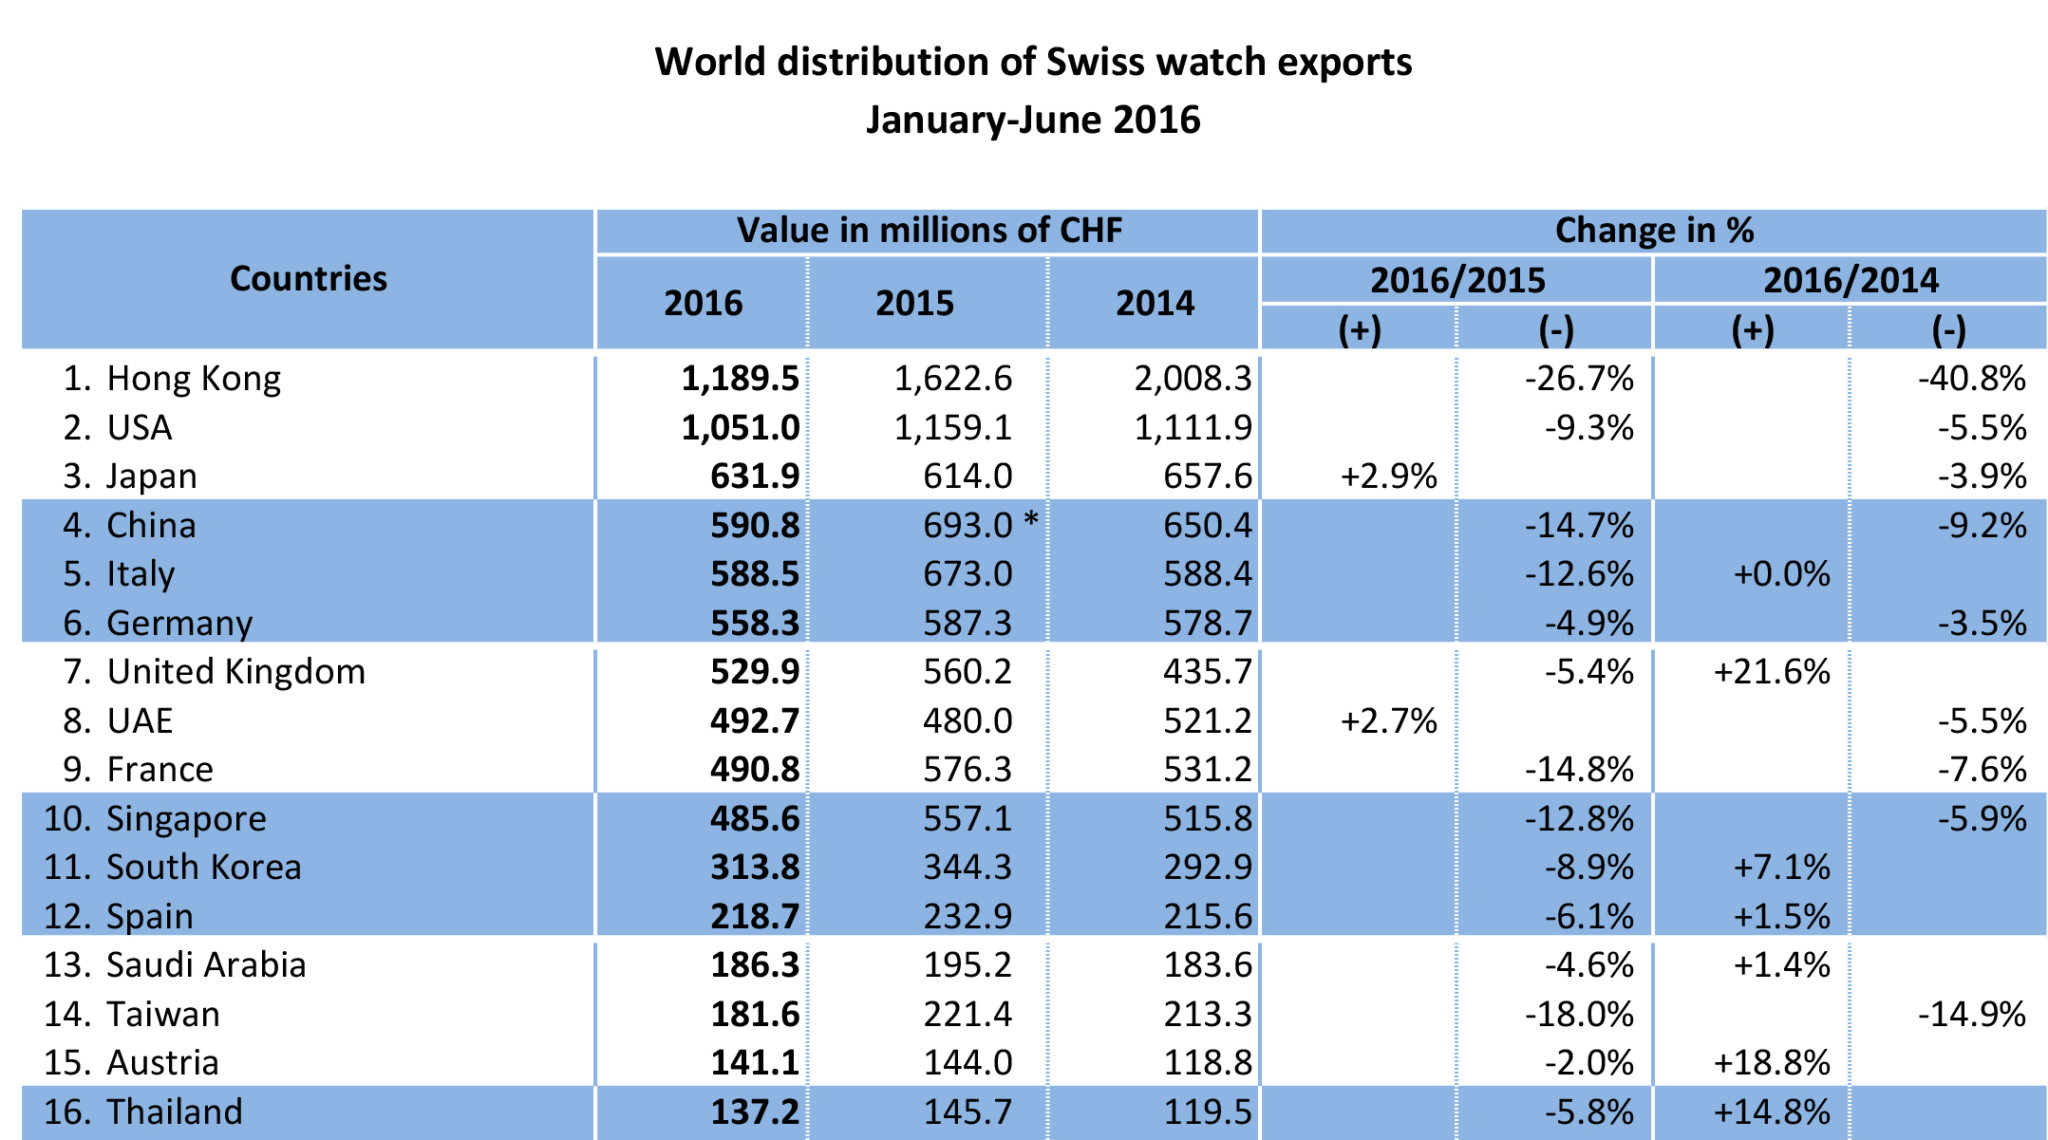 World Distribution of Swiss Watch Exports (June 2016)